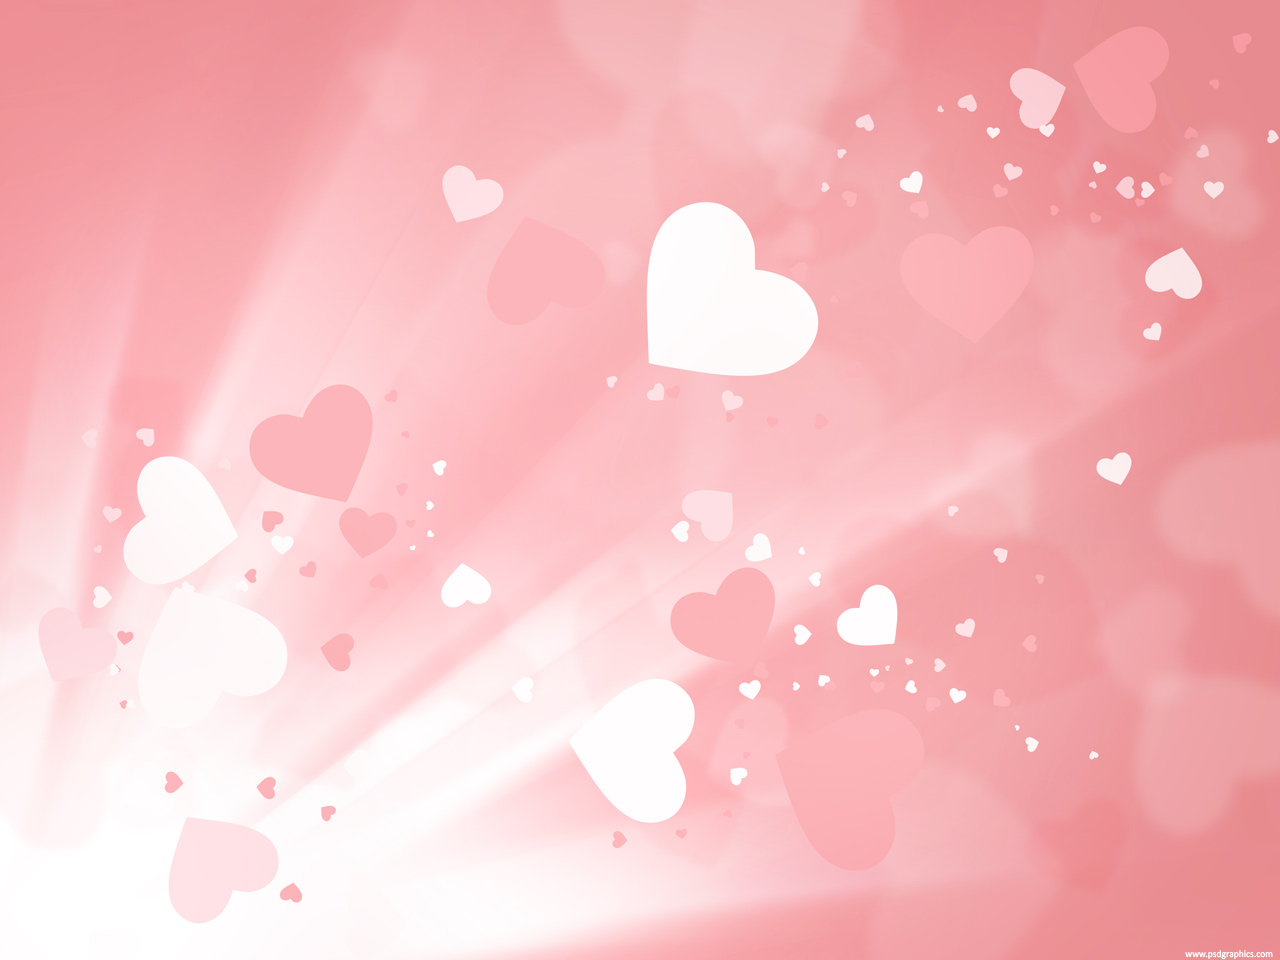 Valentines Day Background 2015 Wallpaper 12406 Wallpaper computer 1280x960